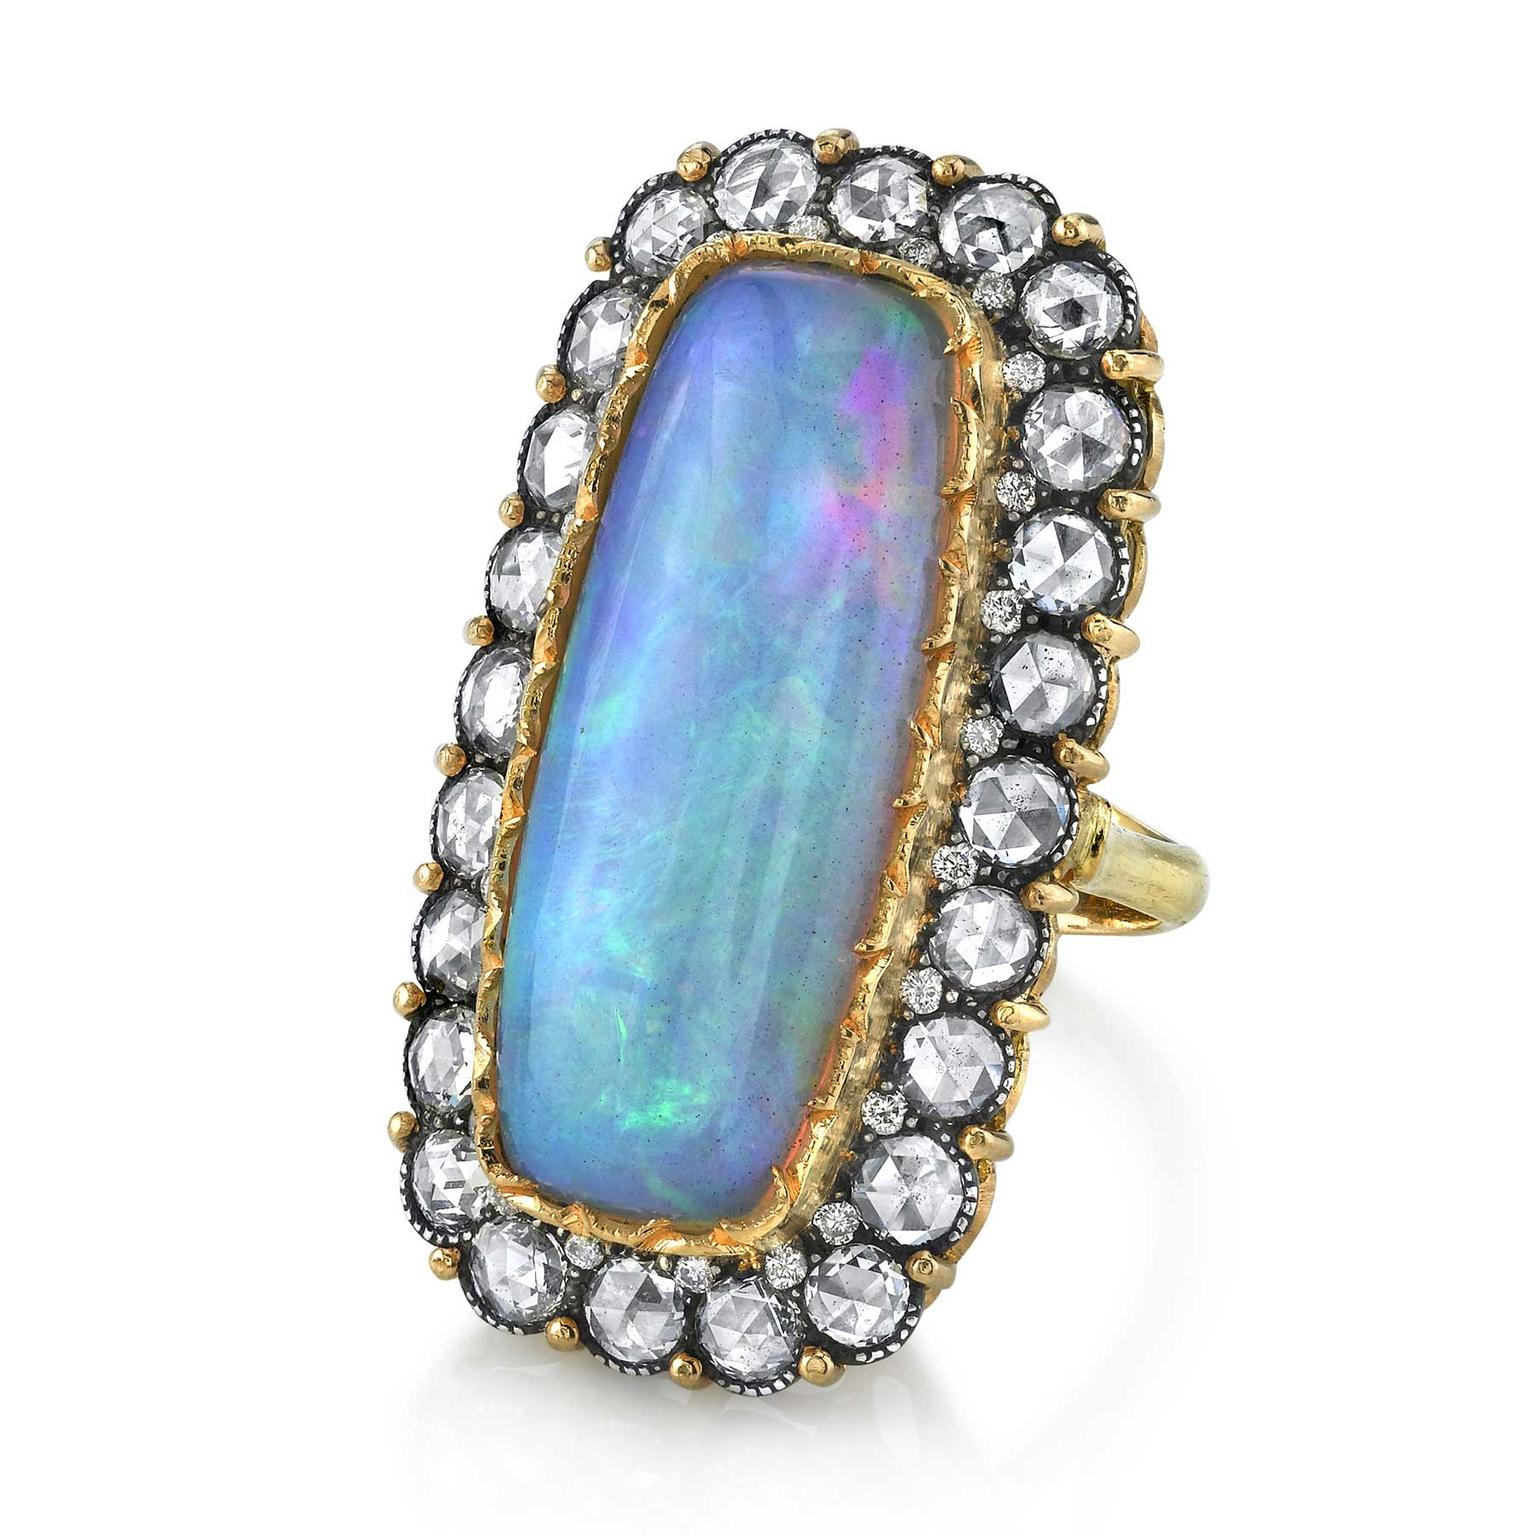 Arman Sarkisyan rose-cut diamond and opal ring